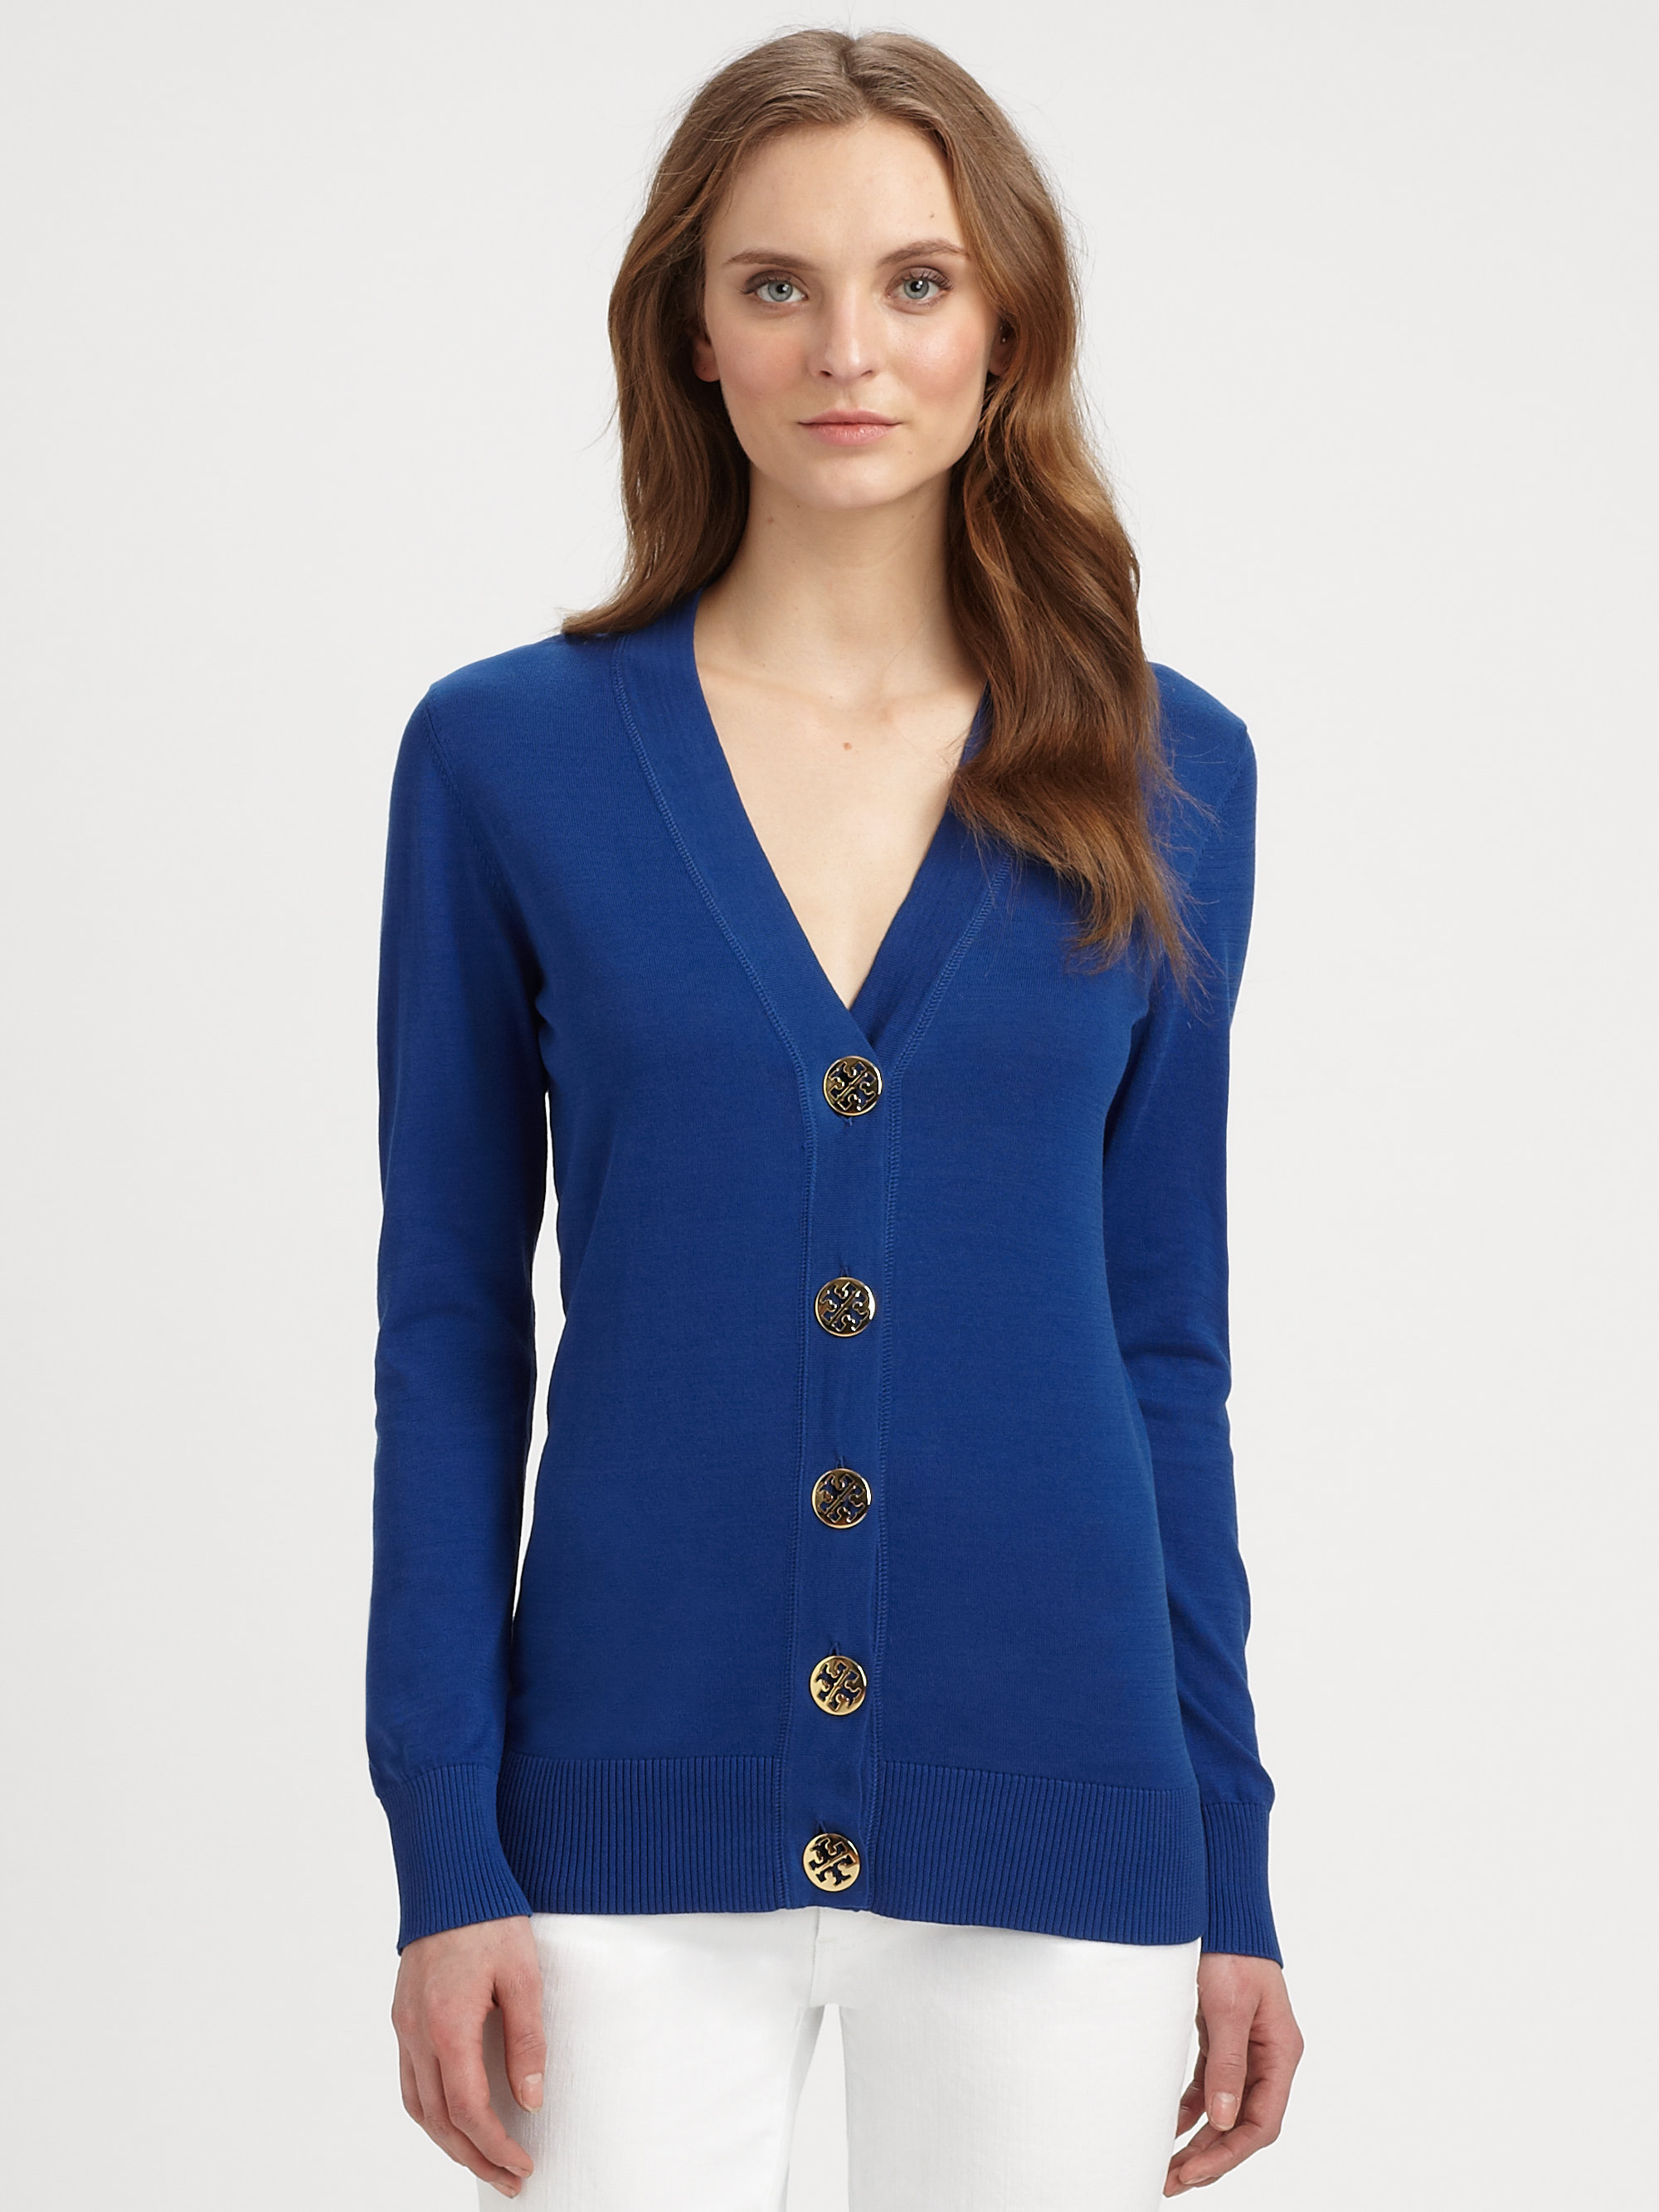 Tory burch Simone Cotton Cardigan Sweater in Blue | Lyst